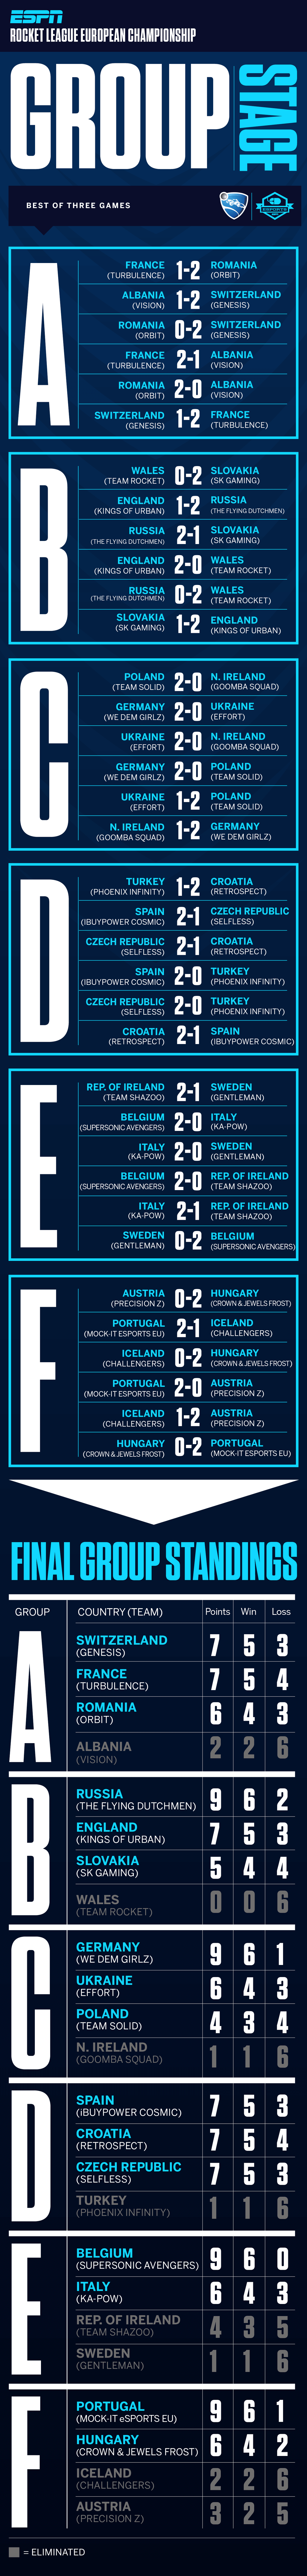 The Rocket League European Championship group stage highlights